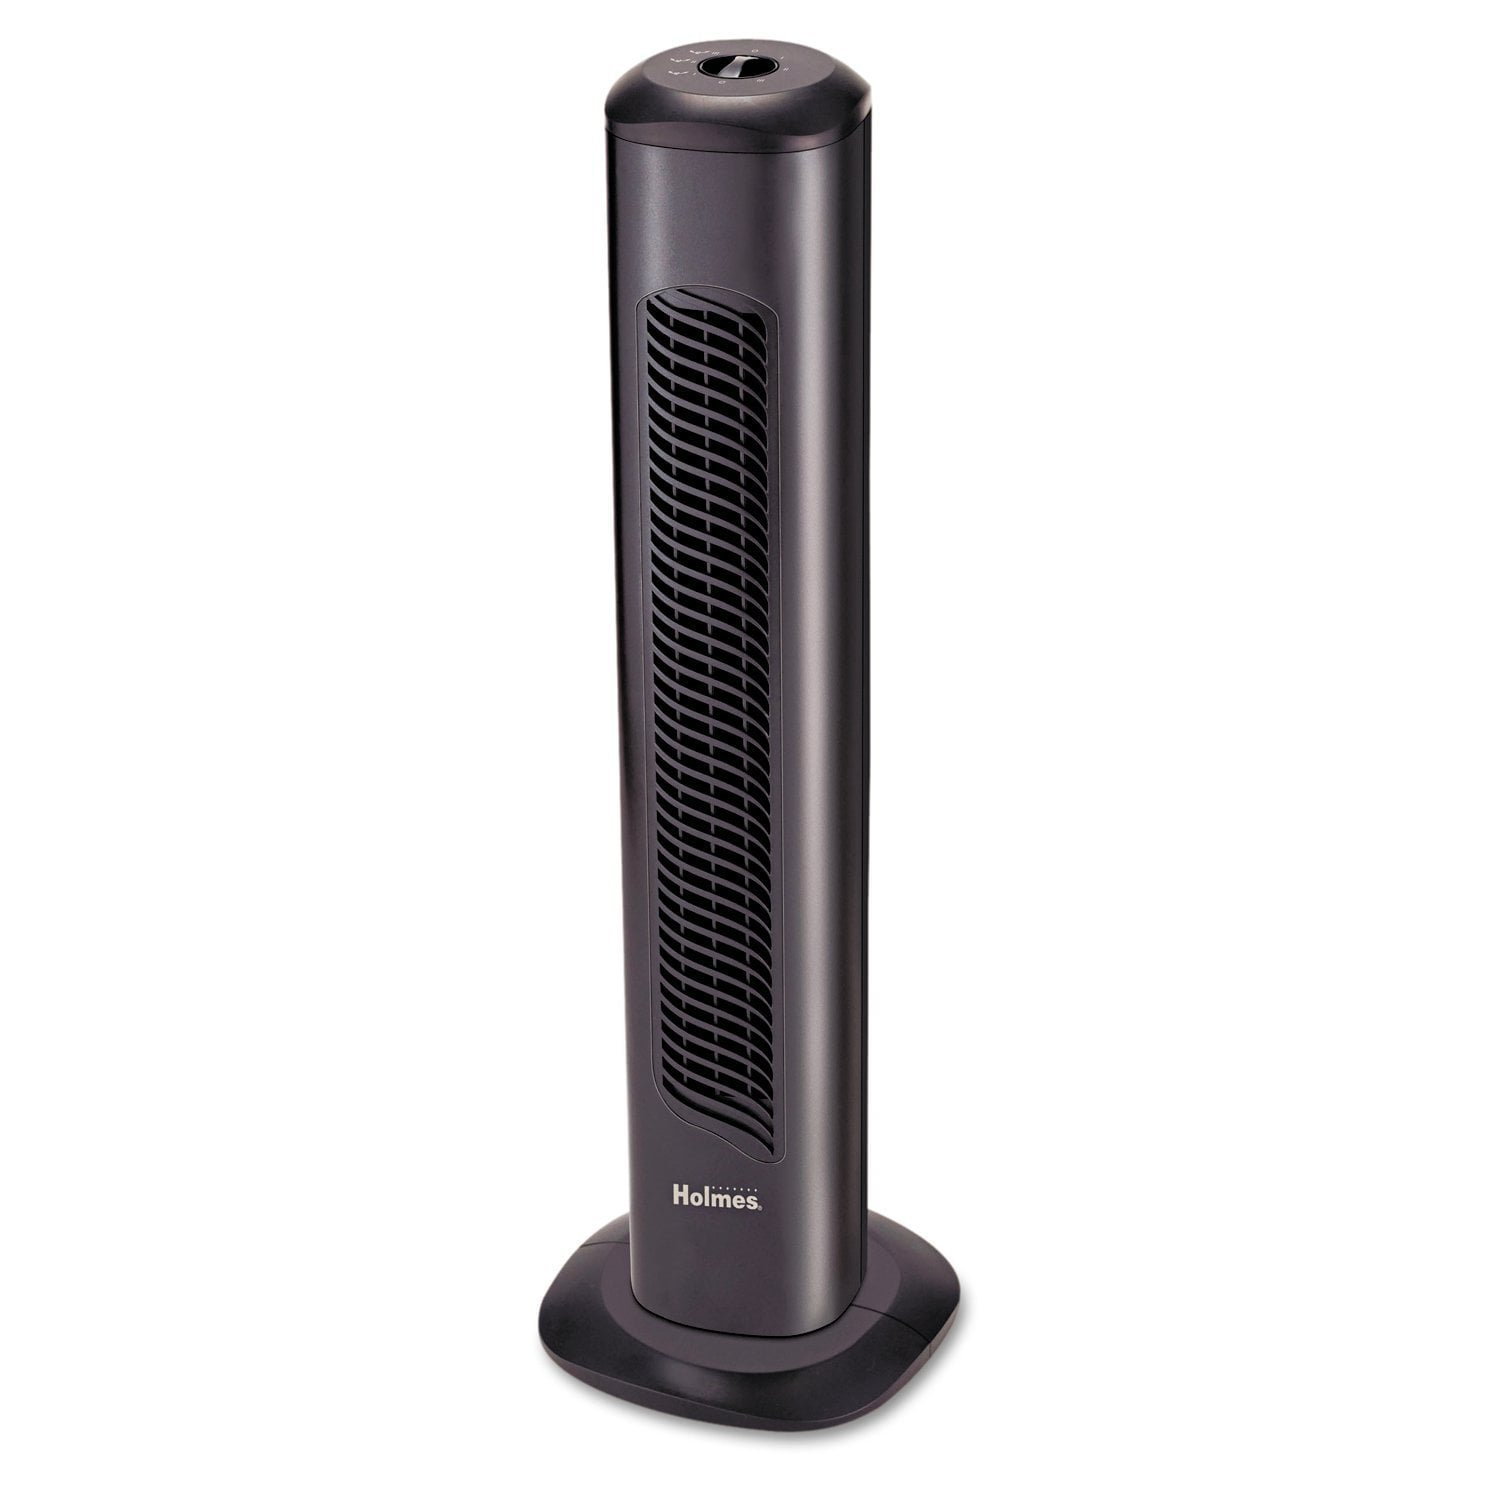 Holmes HT26-U Tower Fan, Black